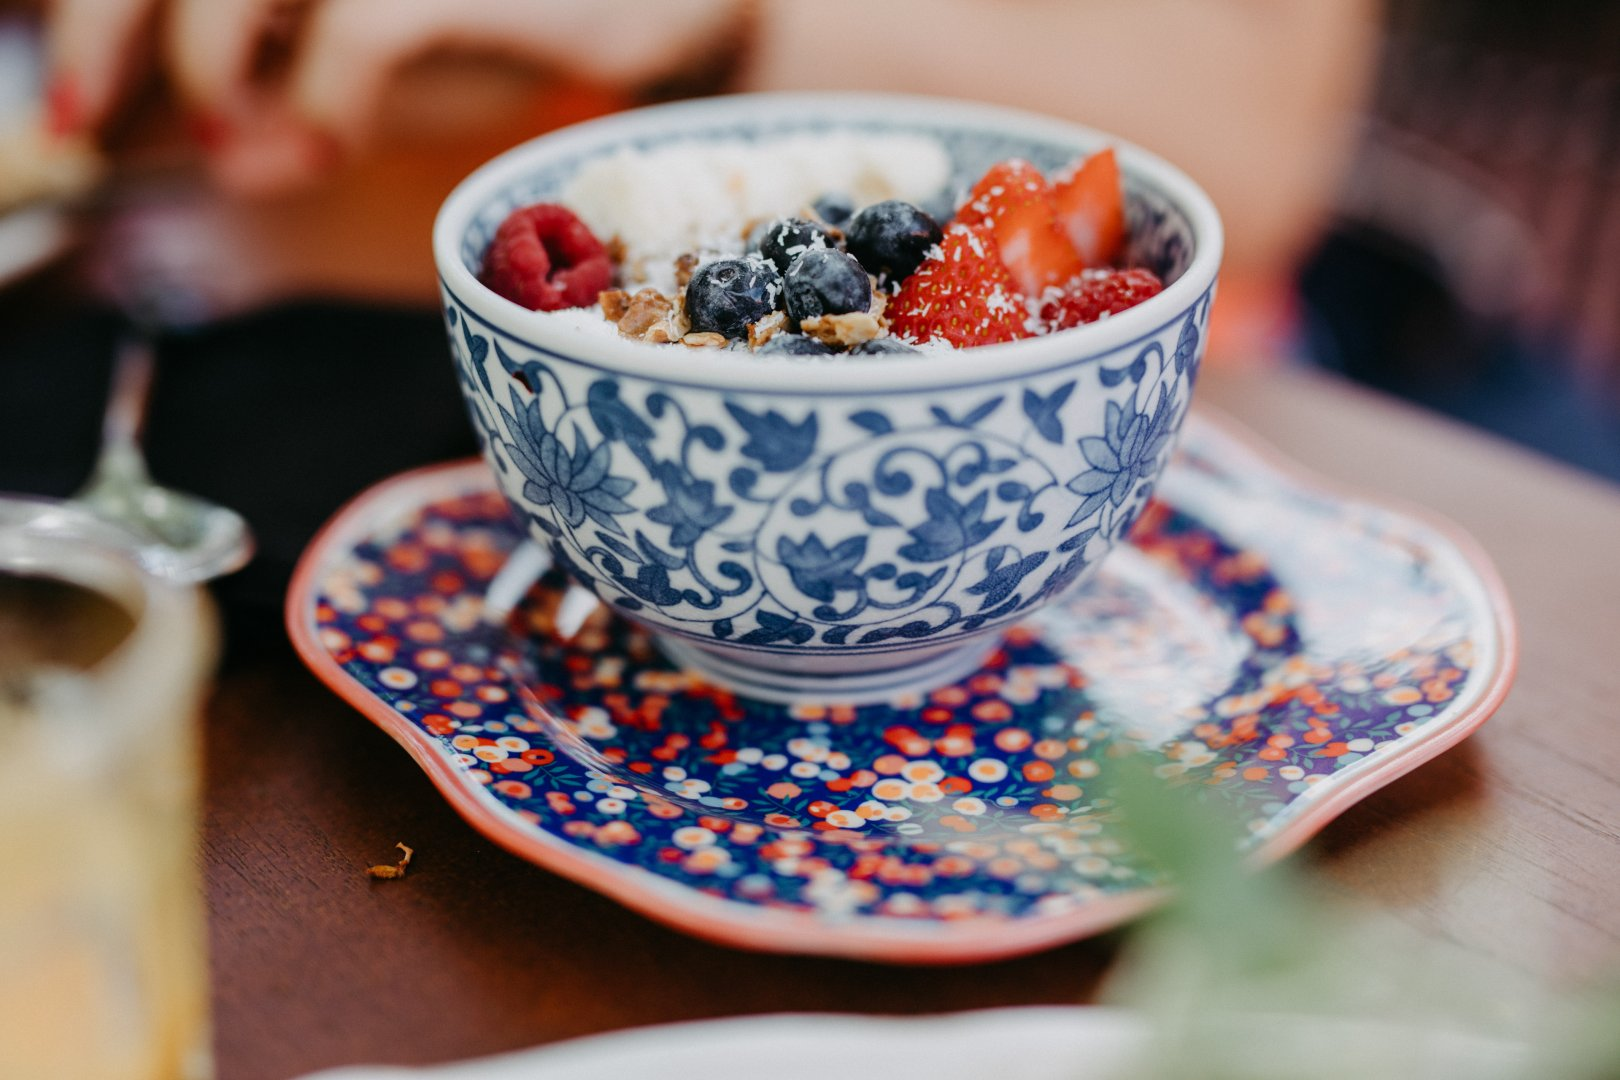 Food Cuisine Dish Ingredient Meal Frutti di bosco Breakfast Berry Produce Fruit Superfood Vegetarian food Tableware Fruit cup Dessert Brunch Plant Blueberry Bowl Blue and white porcelain Macedonia Brazilian food